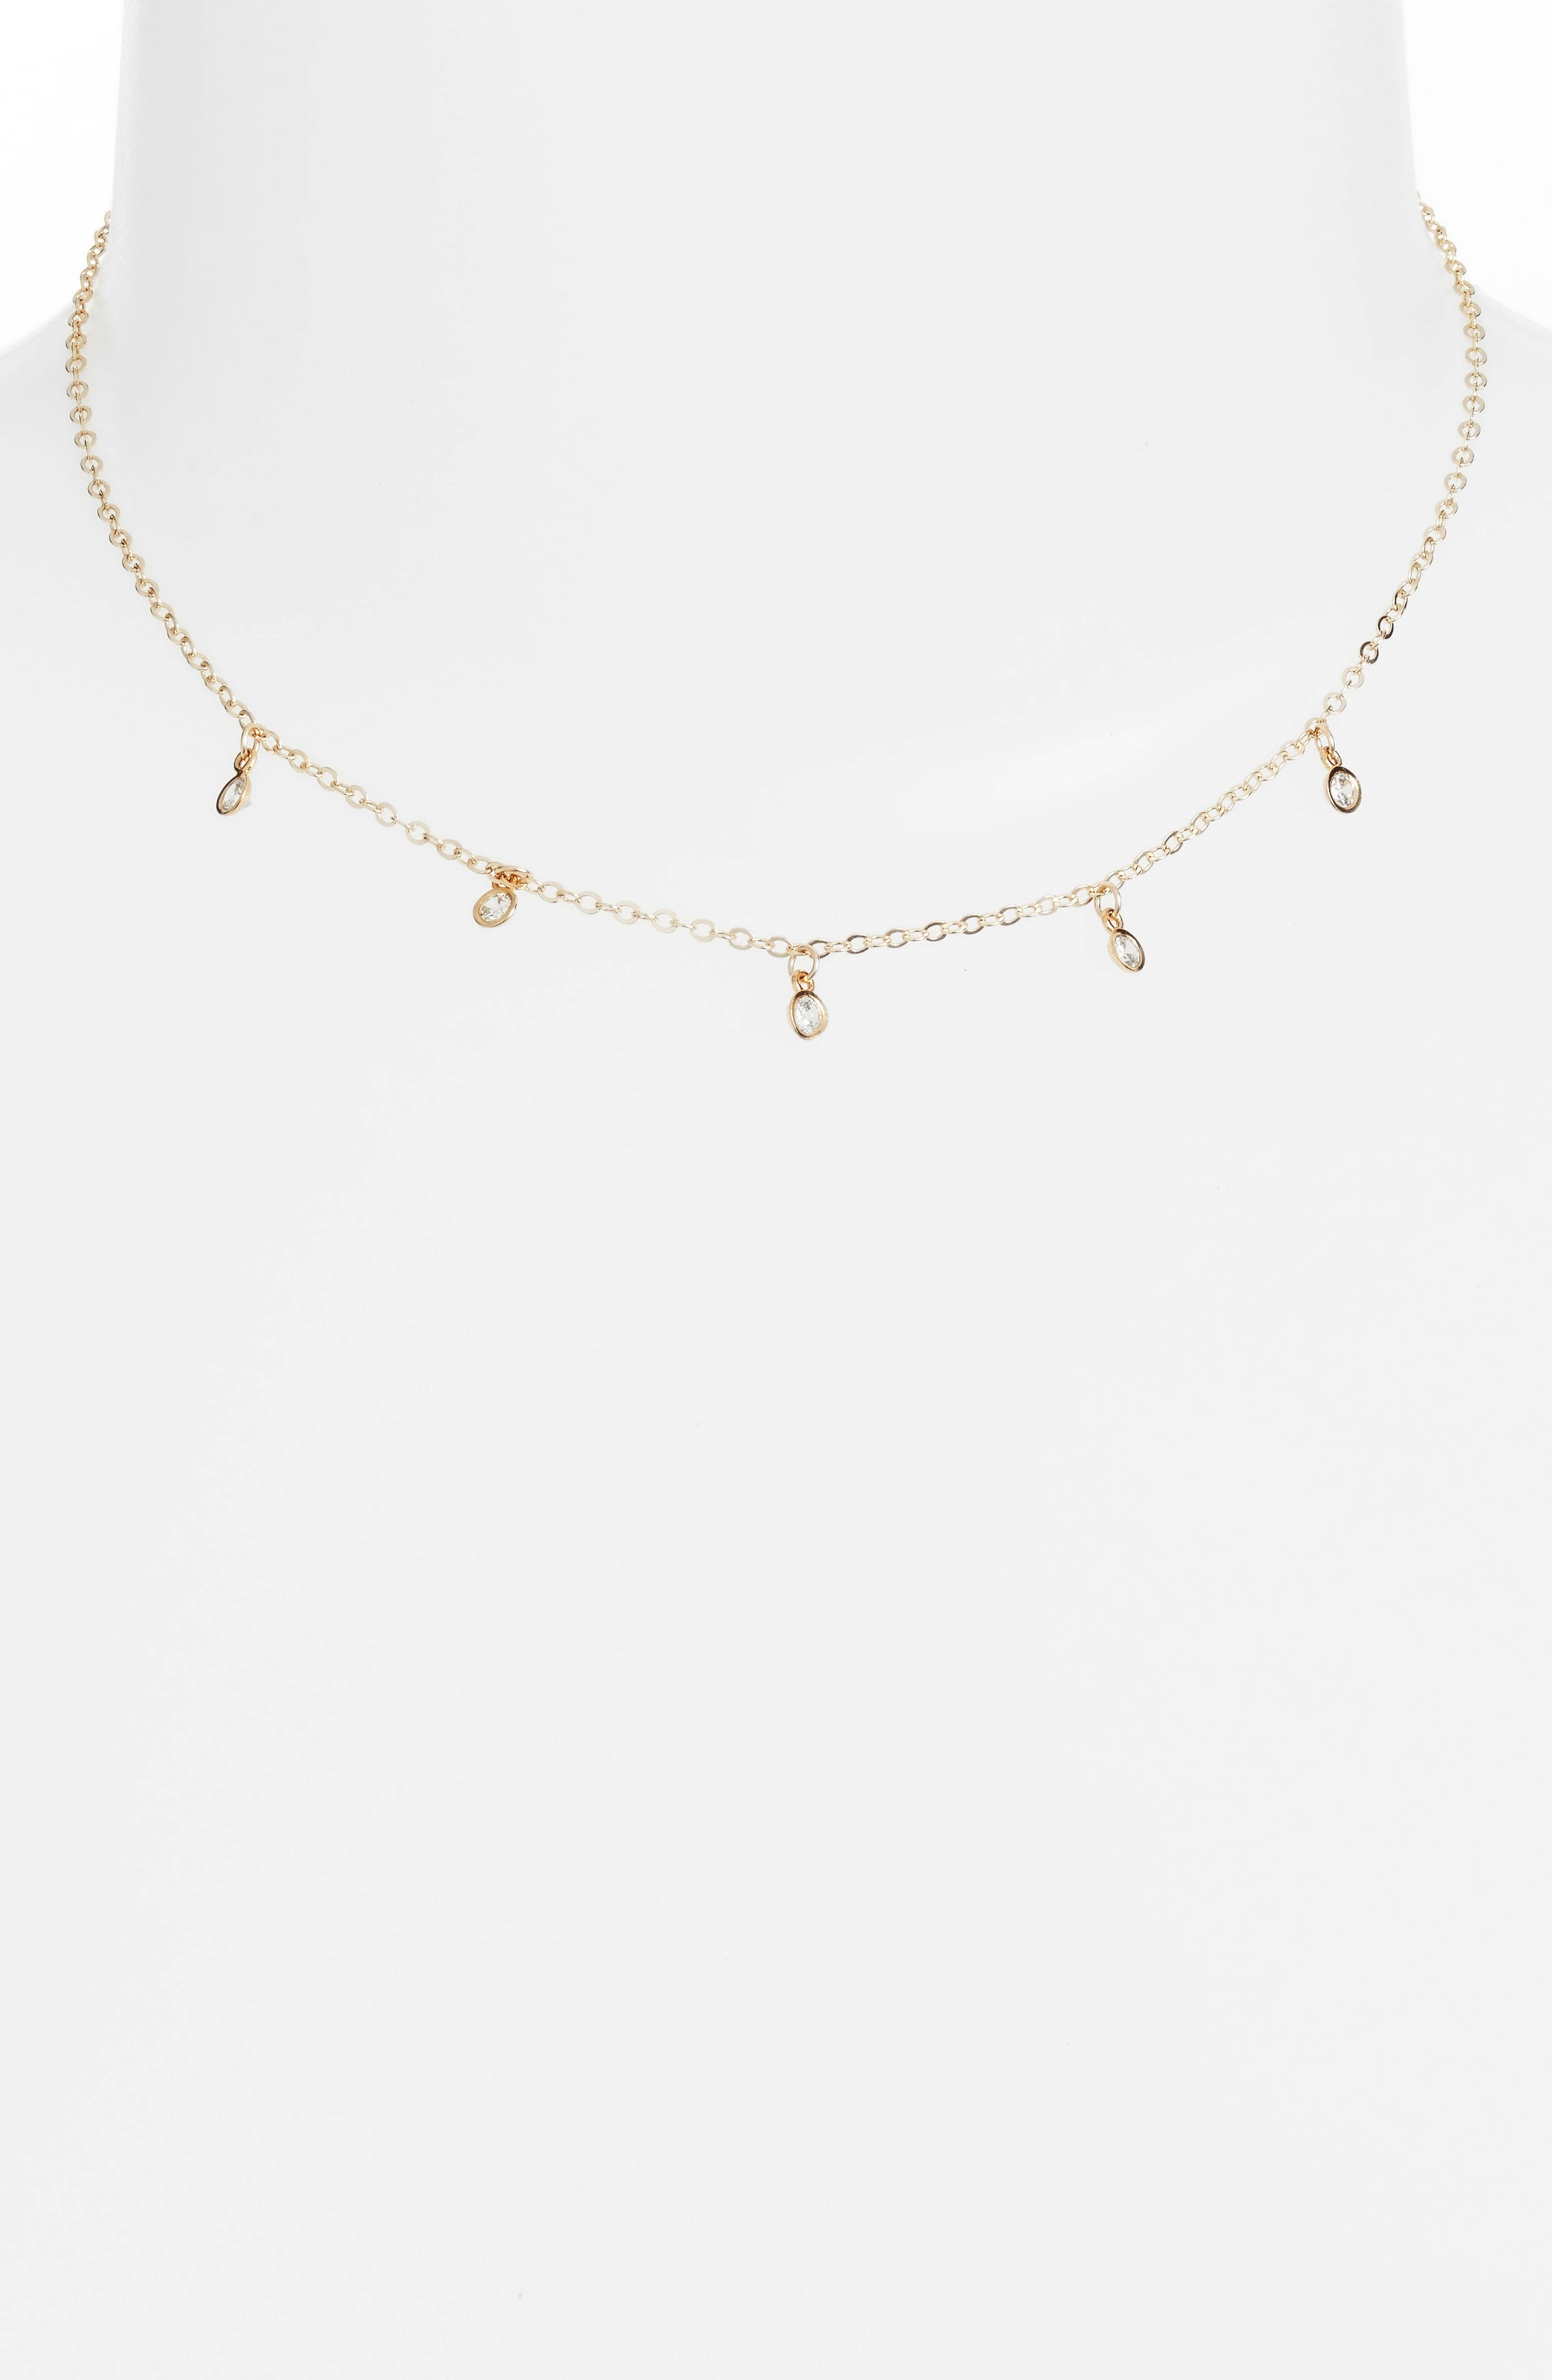 Starry String Lights Choker Necklace,                             Alternate thumbnail 2, color,                             Gold